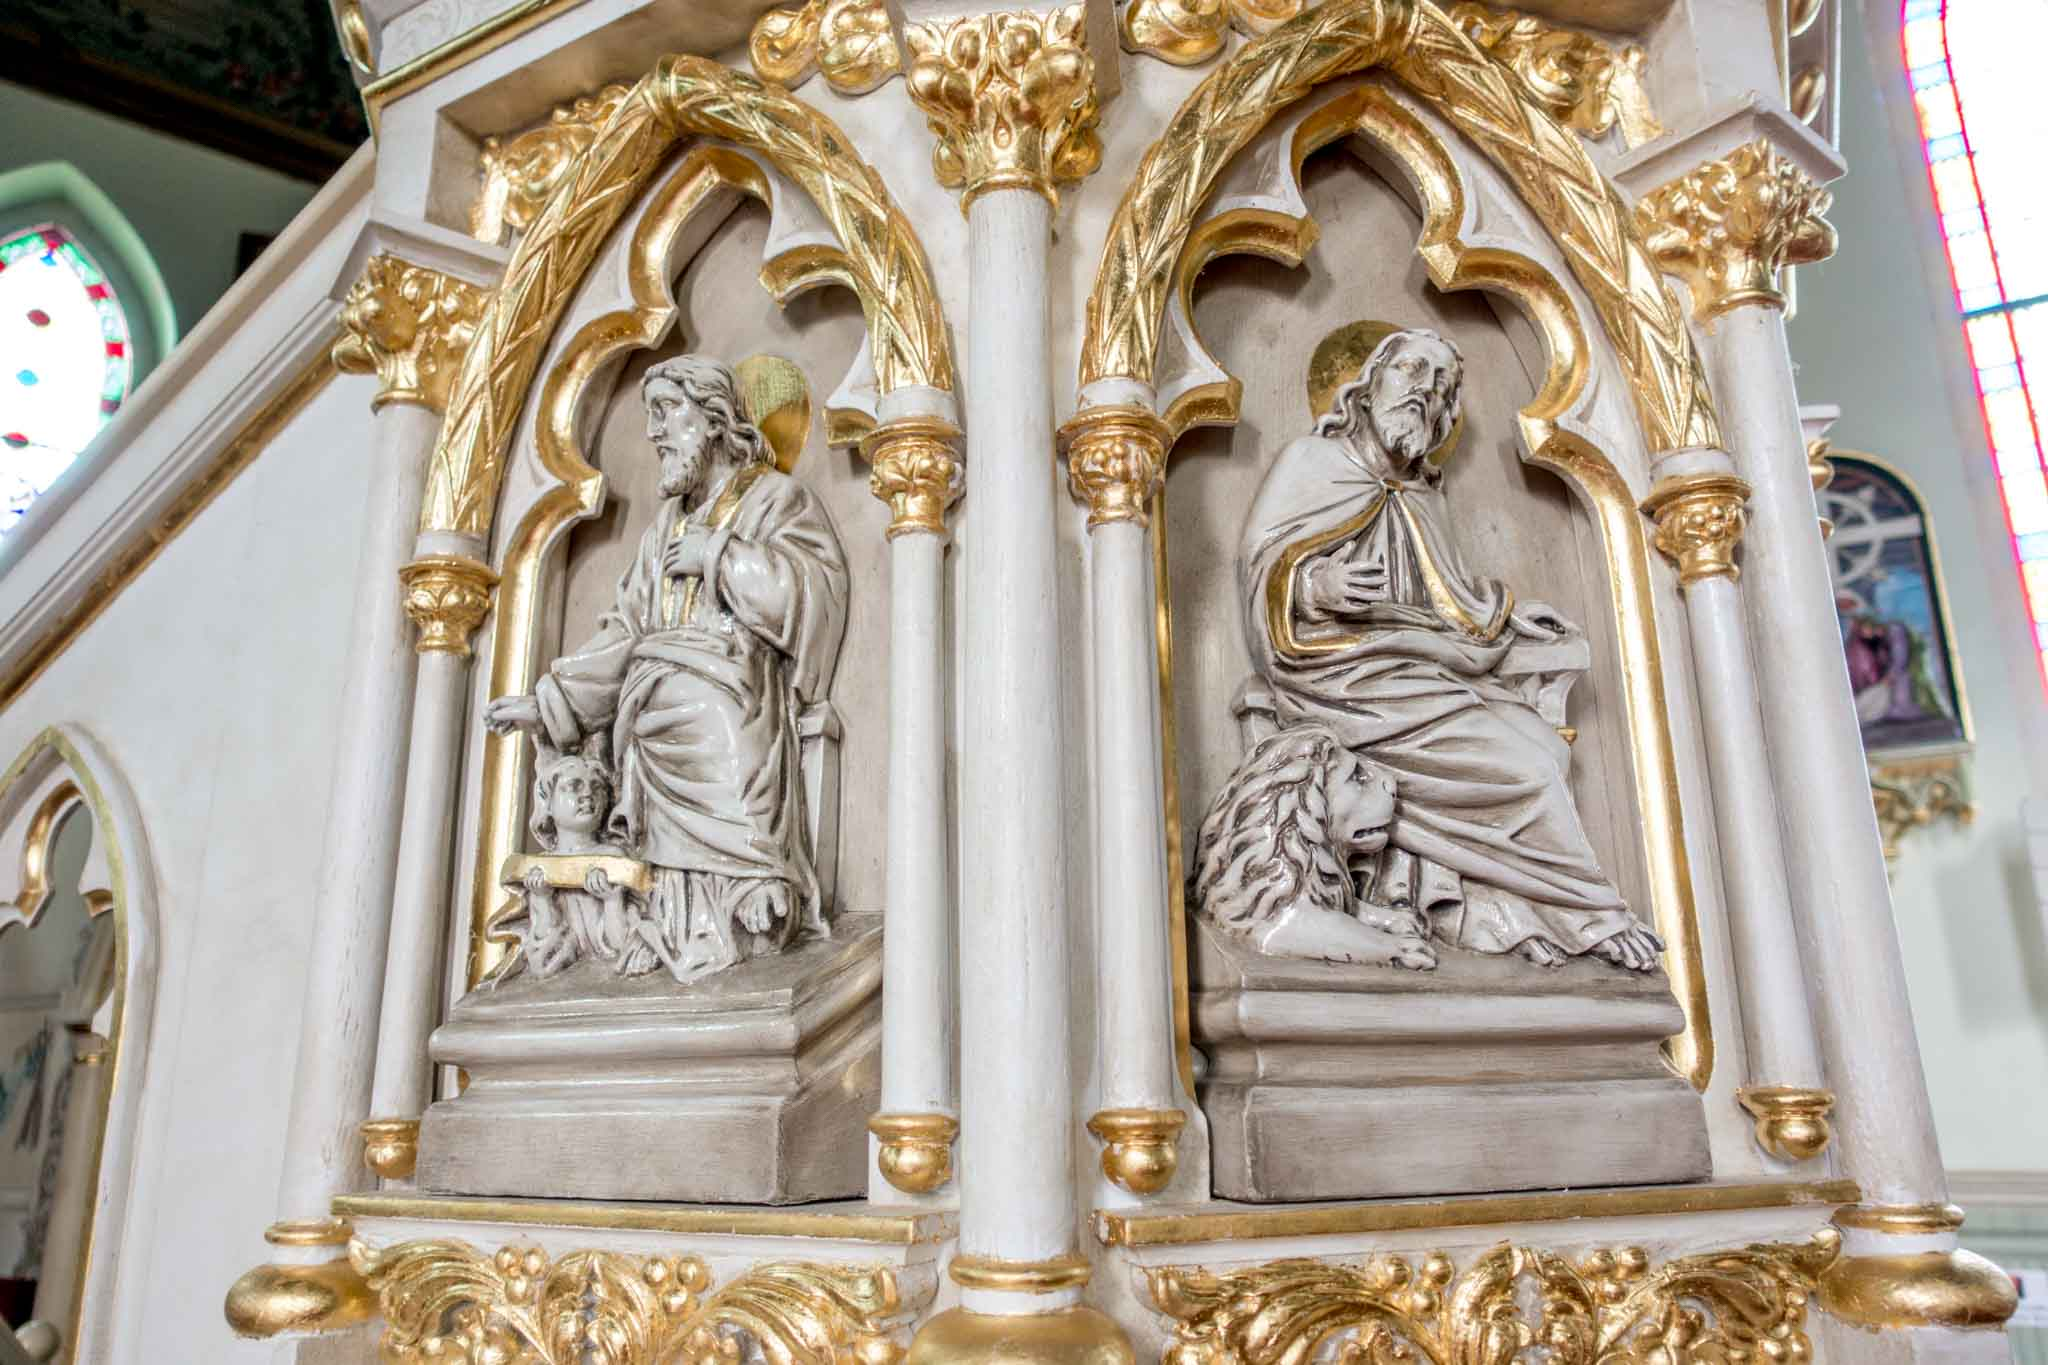 Statues on the base of a pulpit